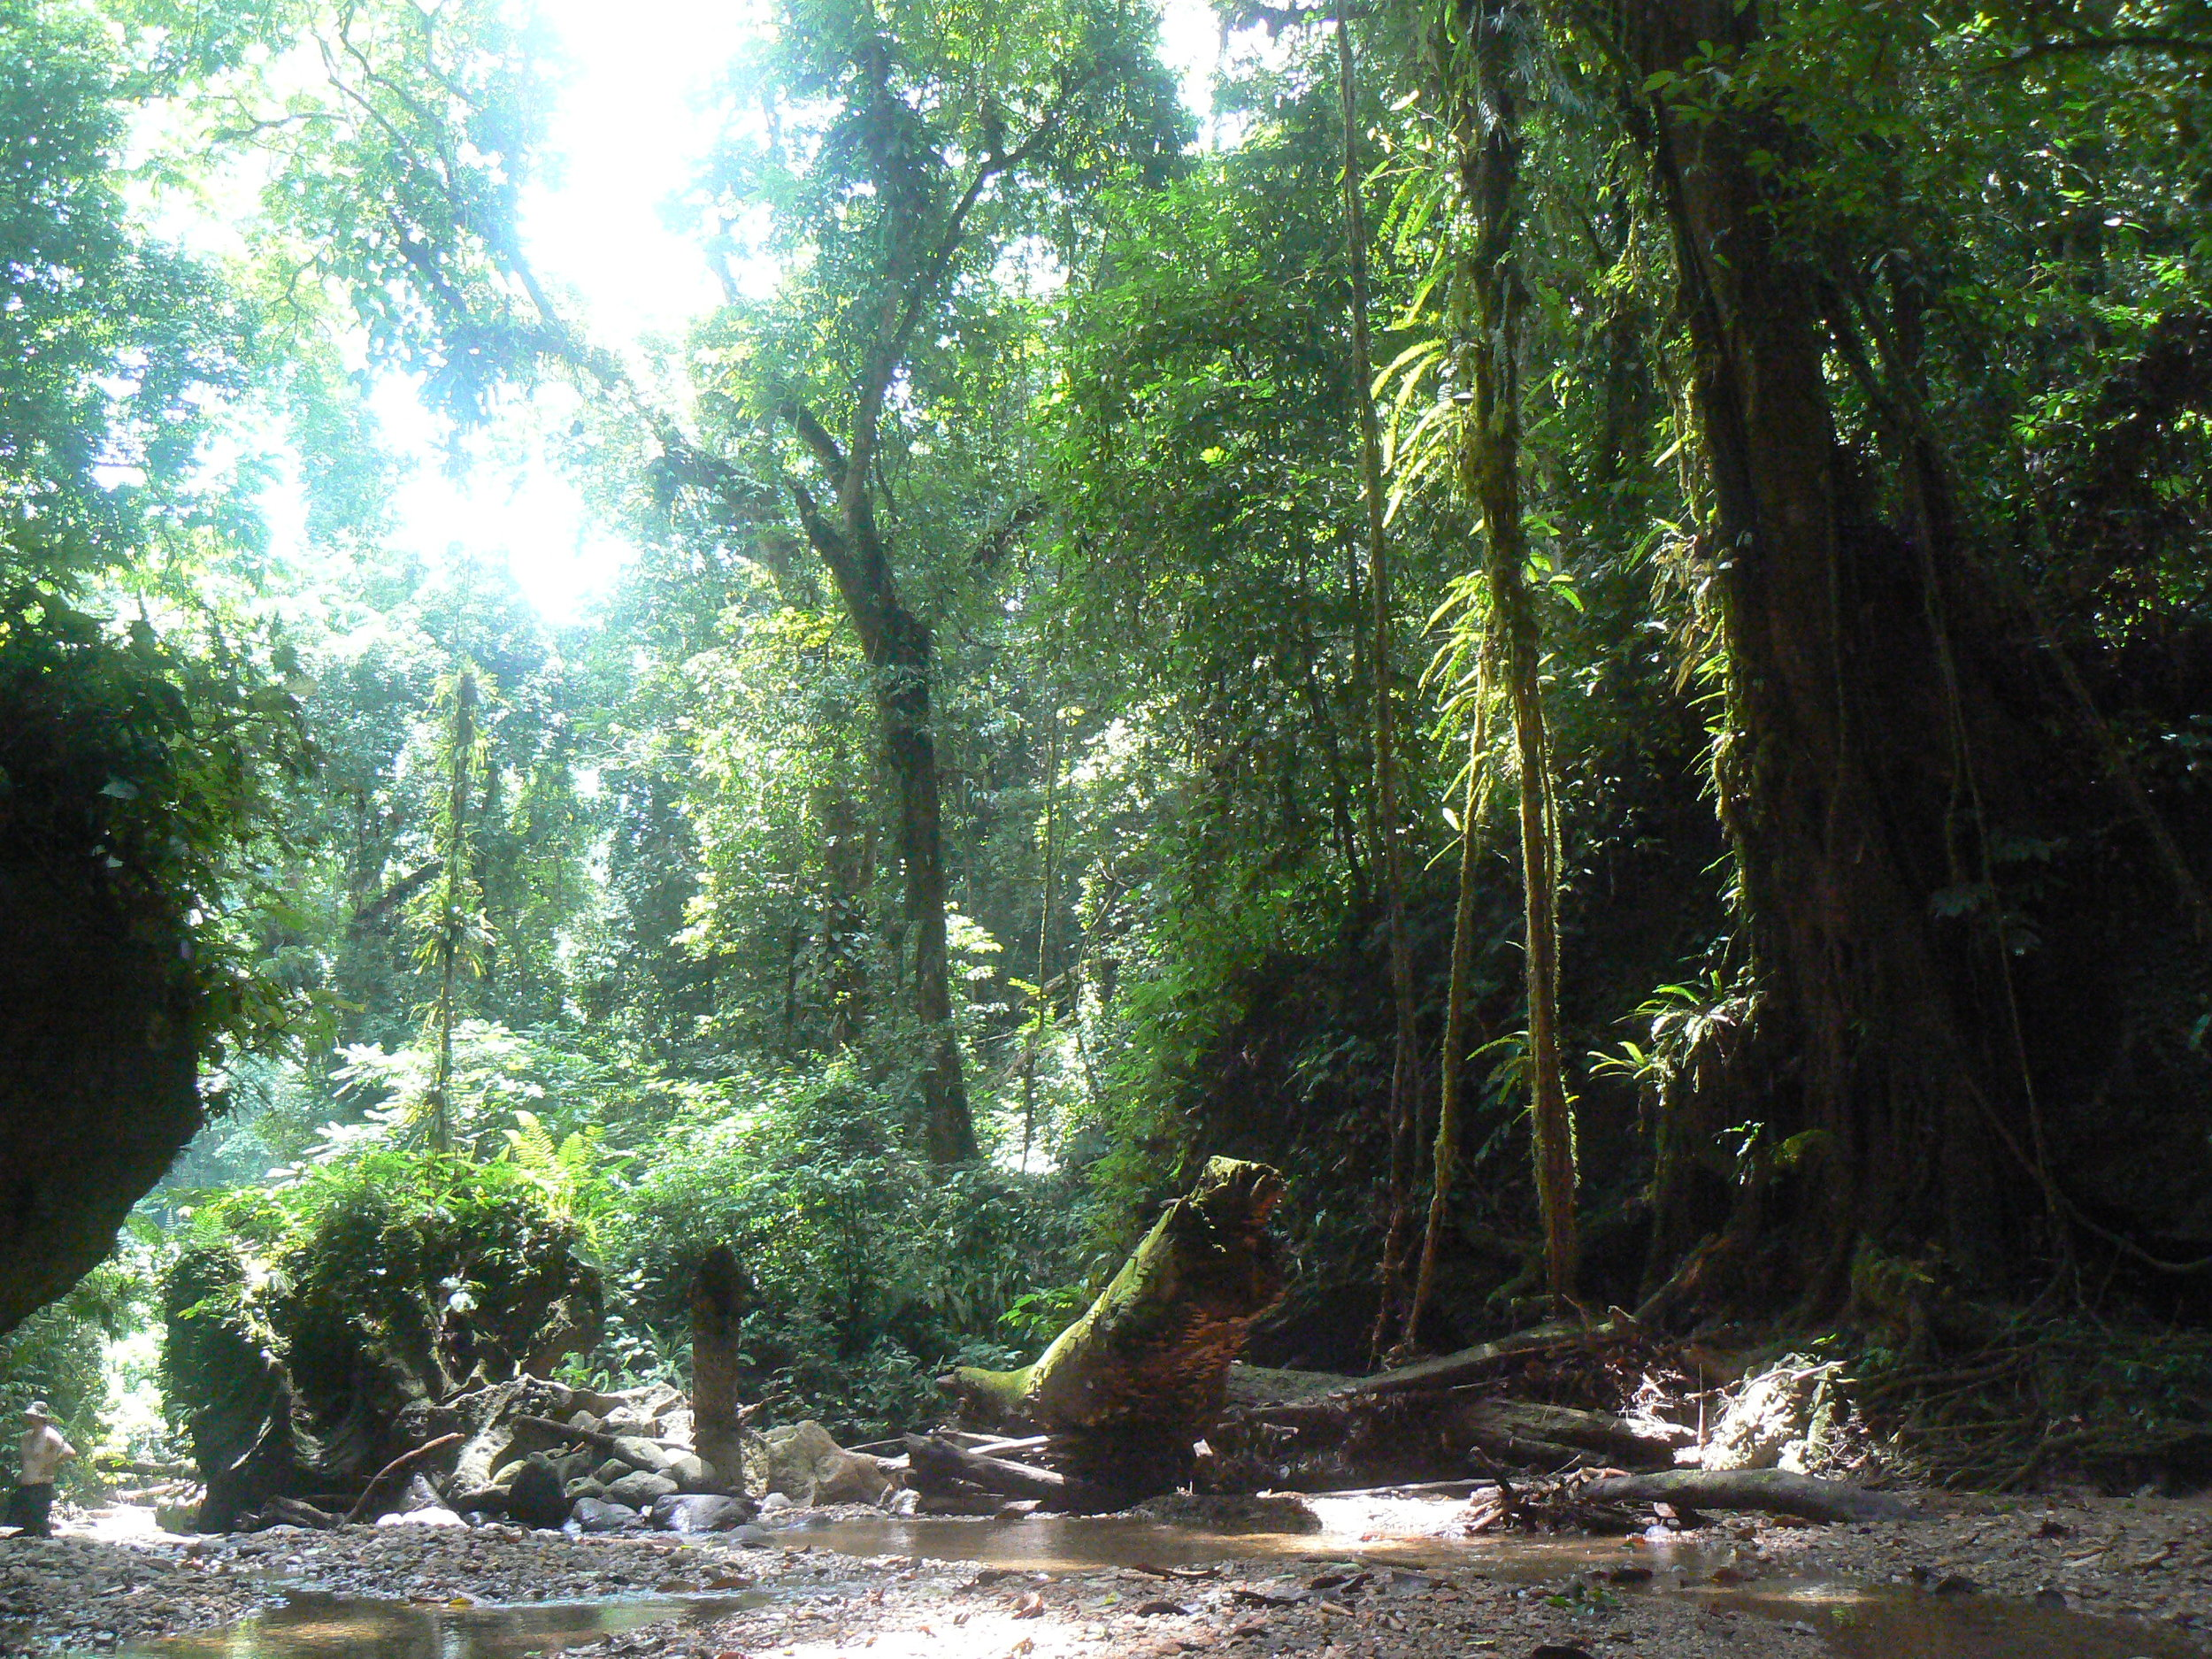 7 day WILDERNESS trekBatu ronggring - Bukit Kencur - Bukit Lawang. - currently being updated* CONTACT US FOR FURTHER INFO